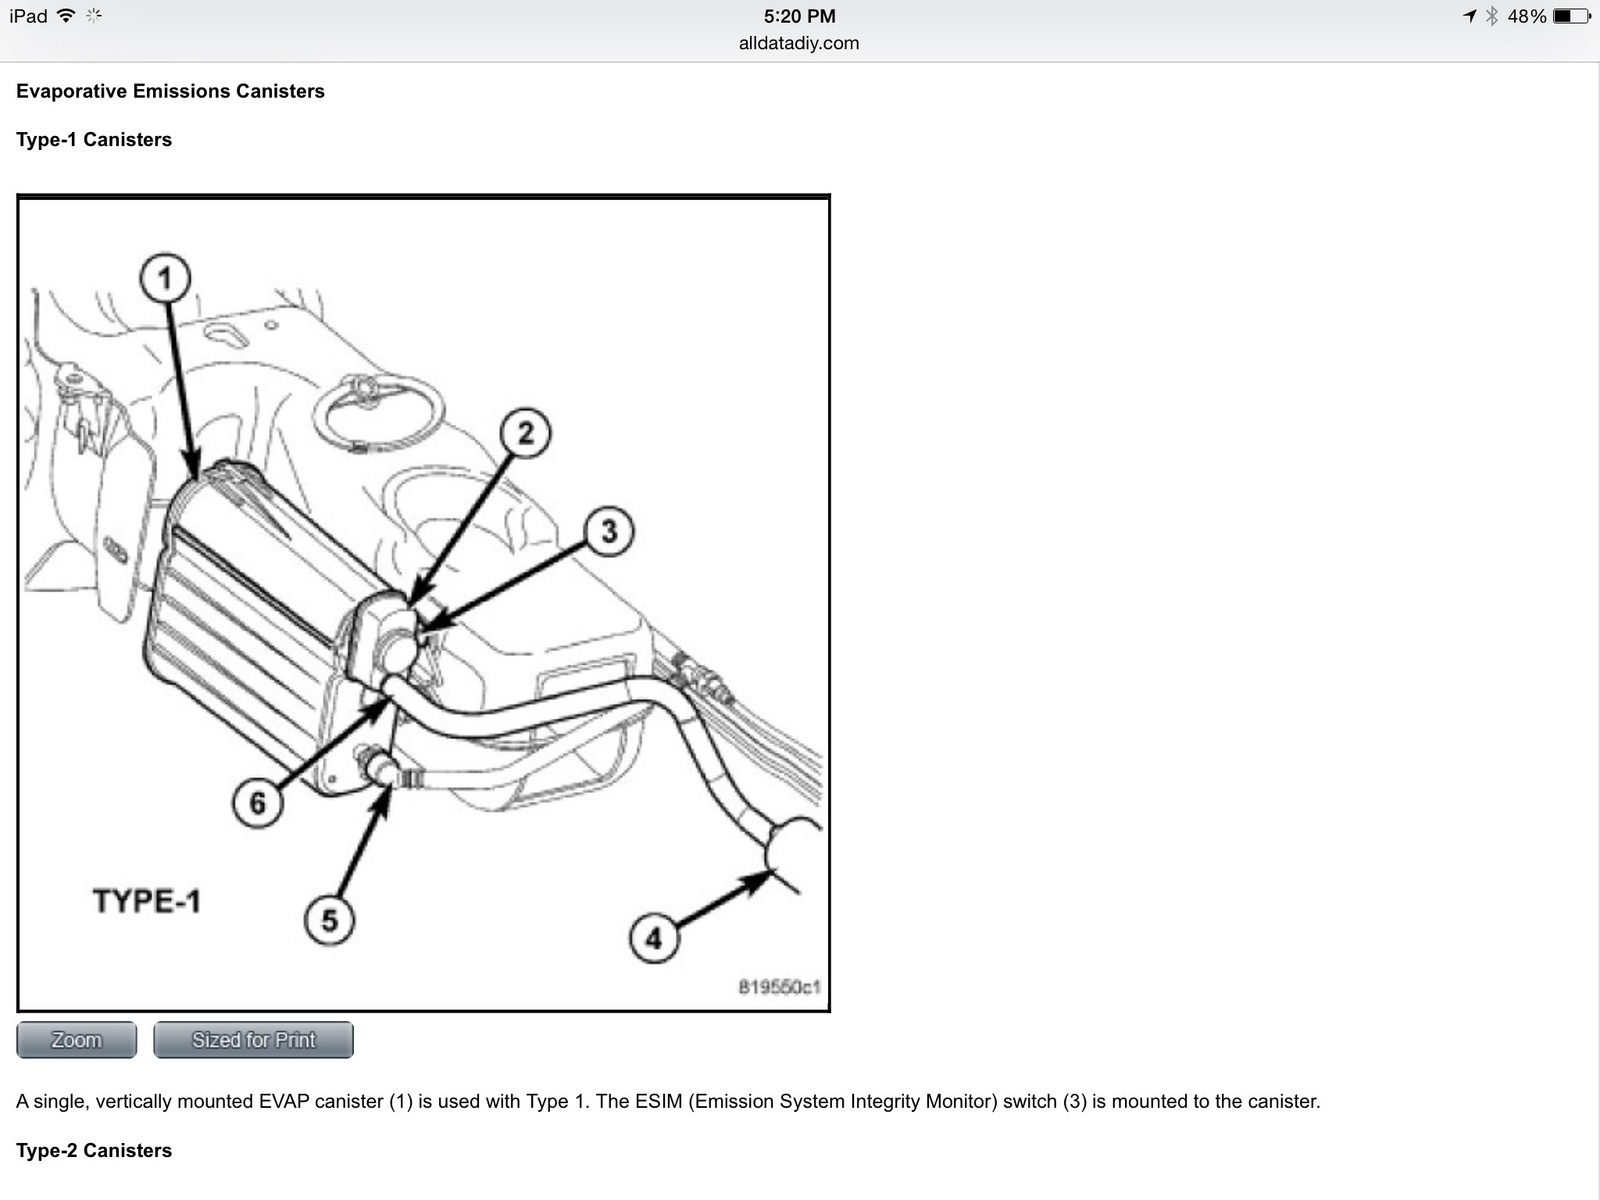 dodge ram 1500 fuel line diagram  dodge  free engine image for user manual download